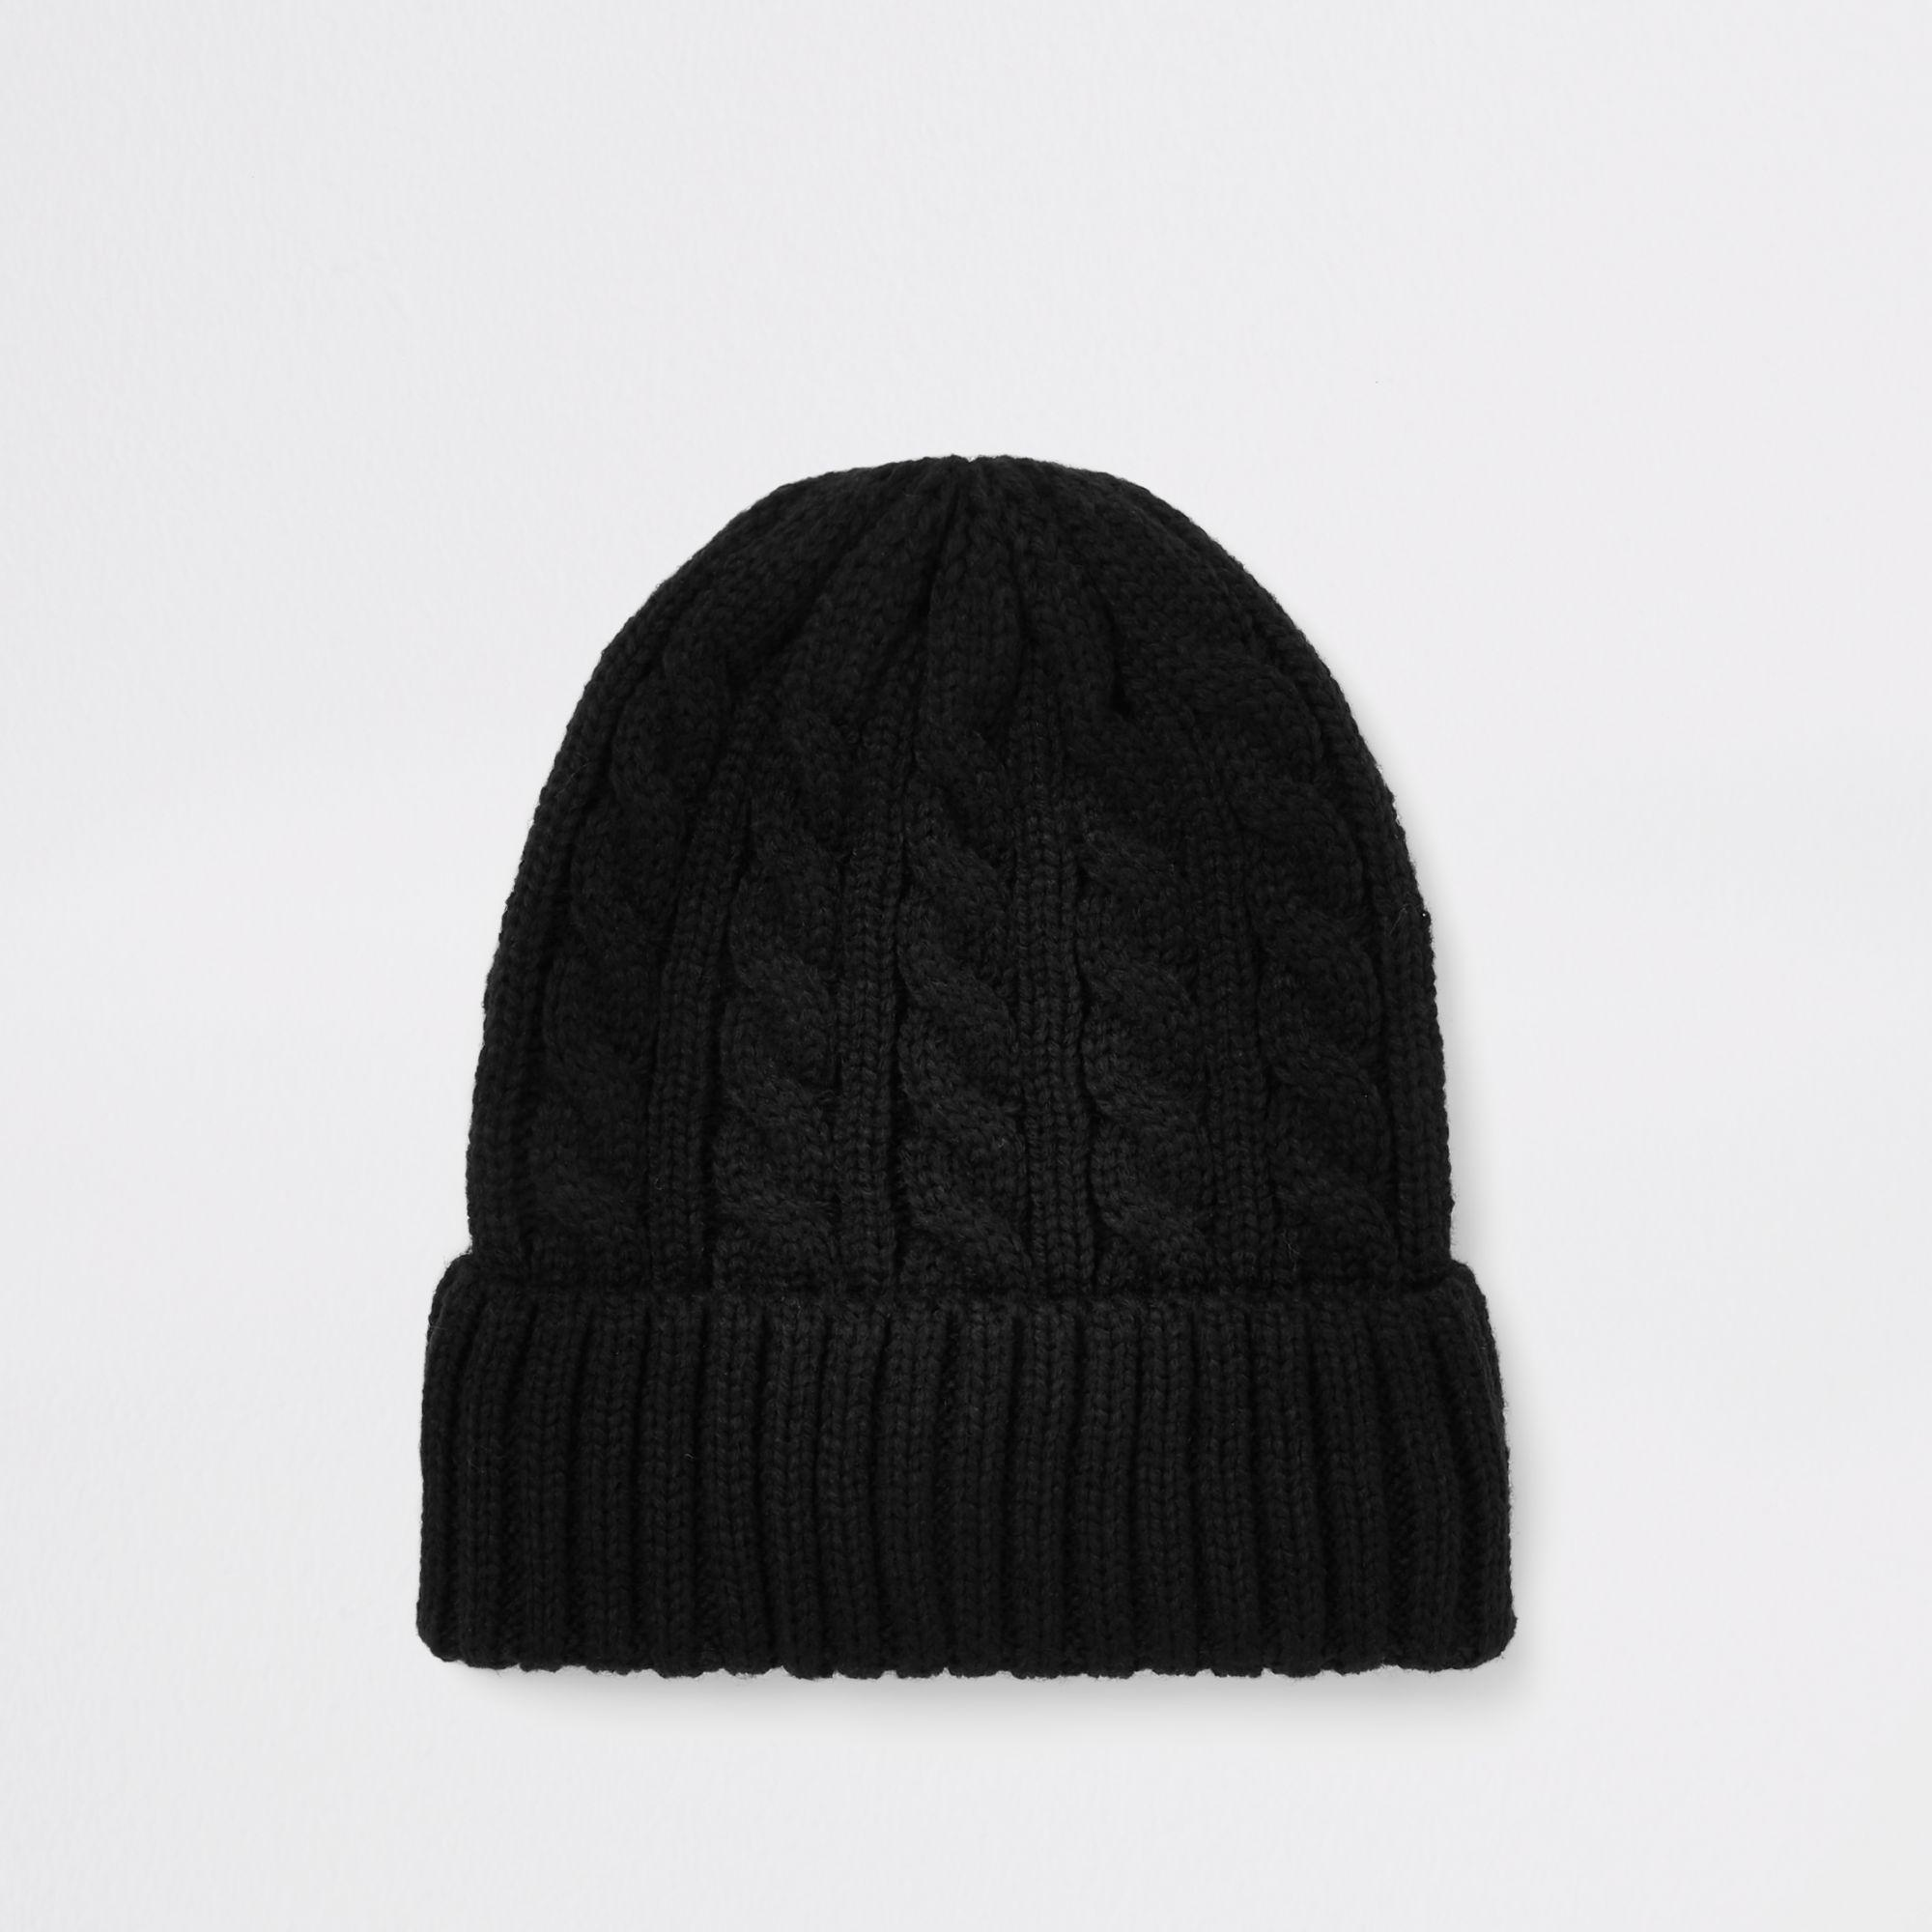 27e0b8d6b04 River Island Cable Knit Fisherman Beanie Hat in Black for Men - Lyst